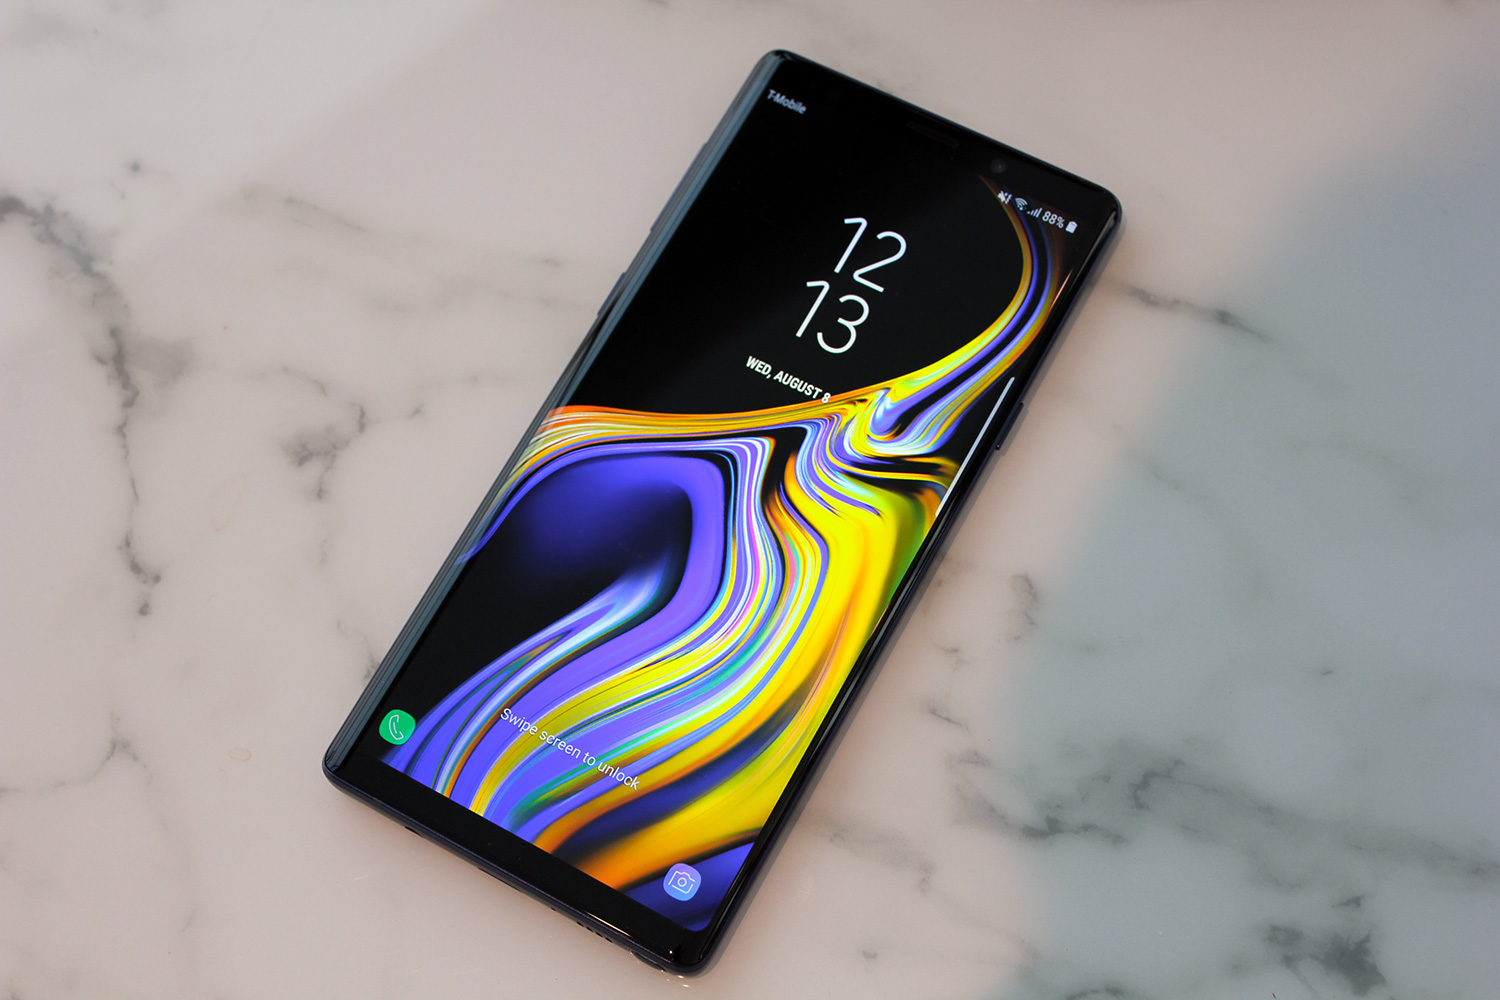 The Galaxy Note 9's display is better than any other smartphone – even the iPhone X – BGR